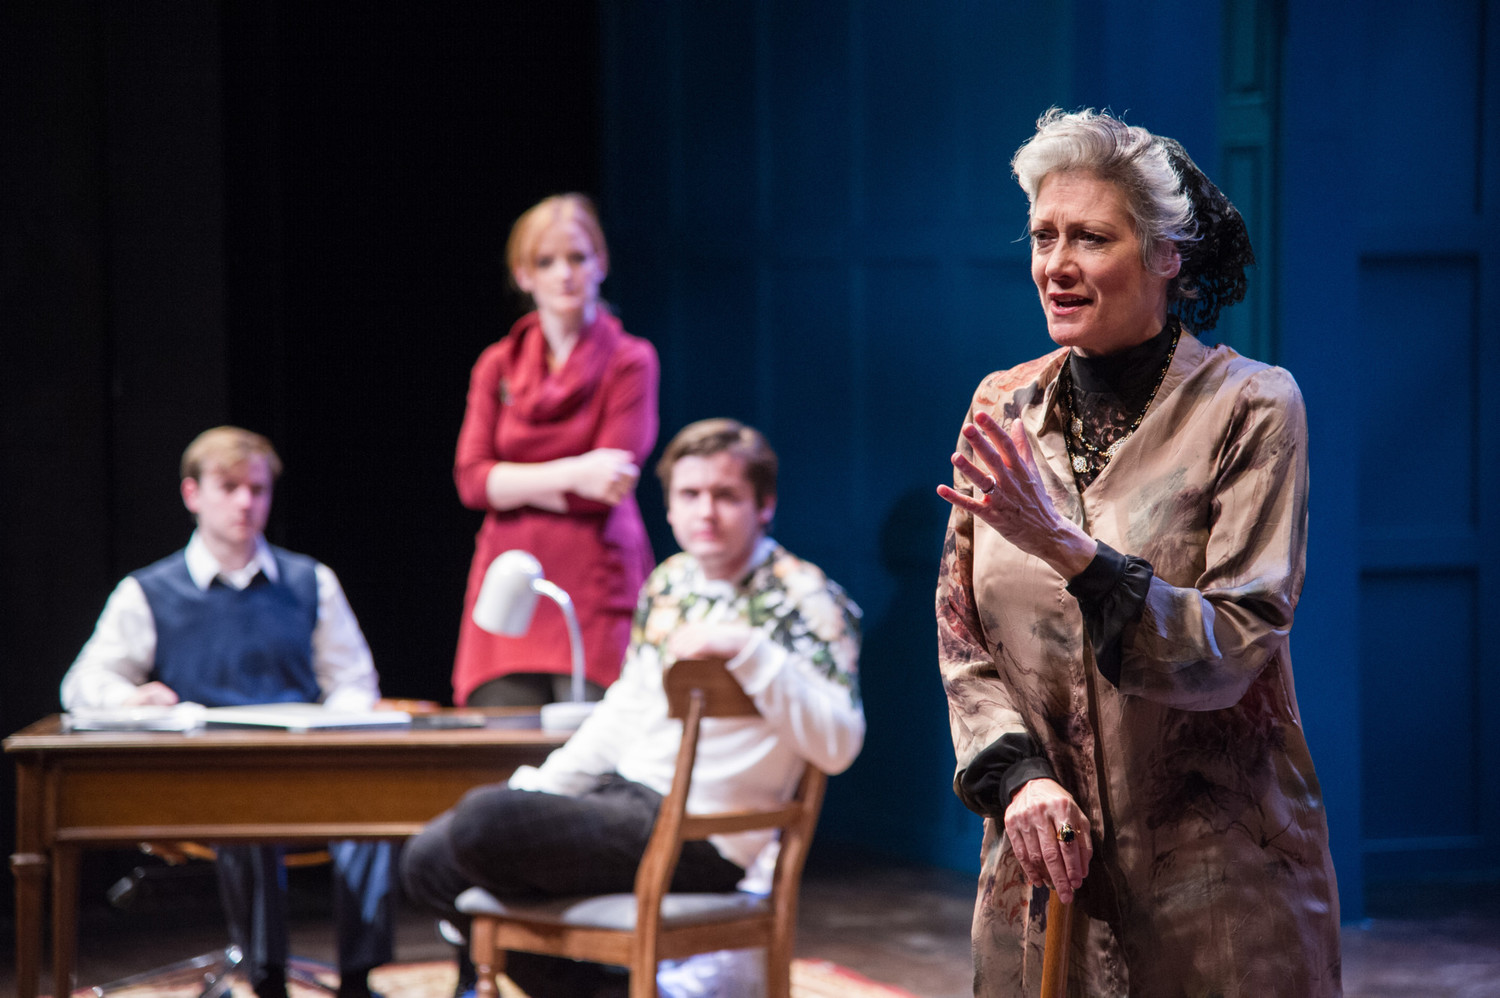 BWW Review: THE JEWISH QUEEN LEAR at Theater J